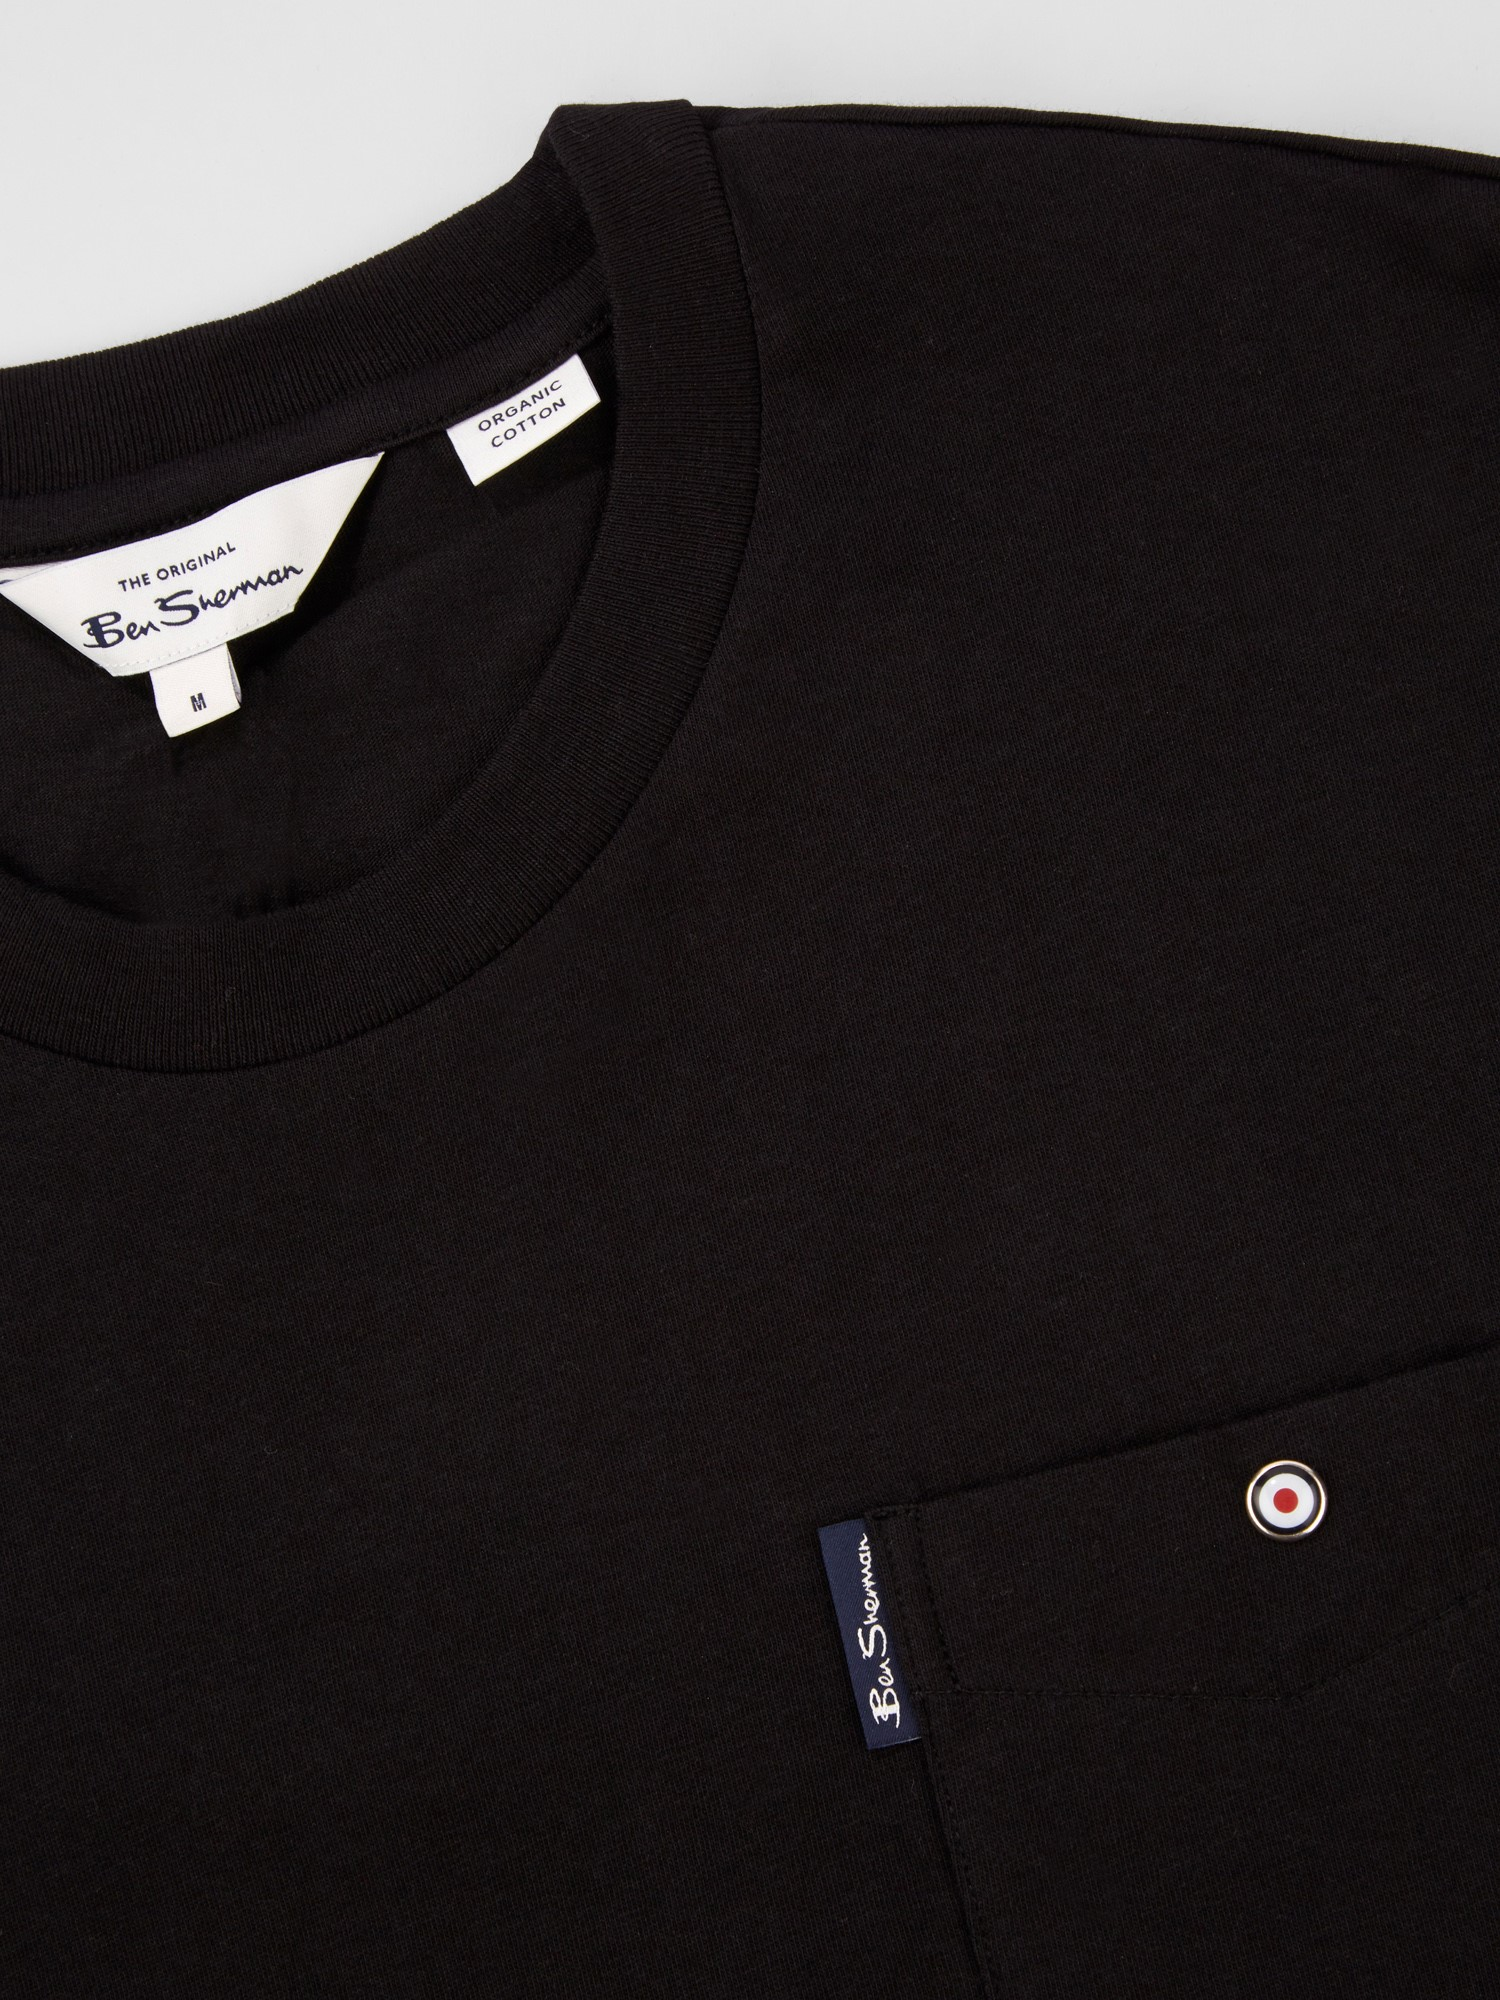 Black Signature Tee with Chest Pocket